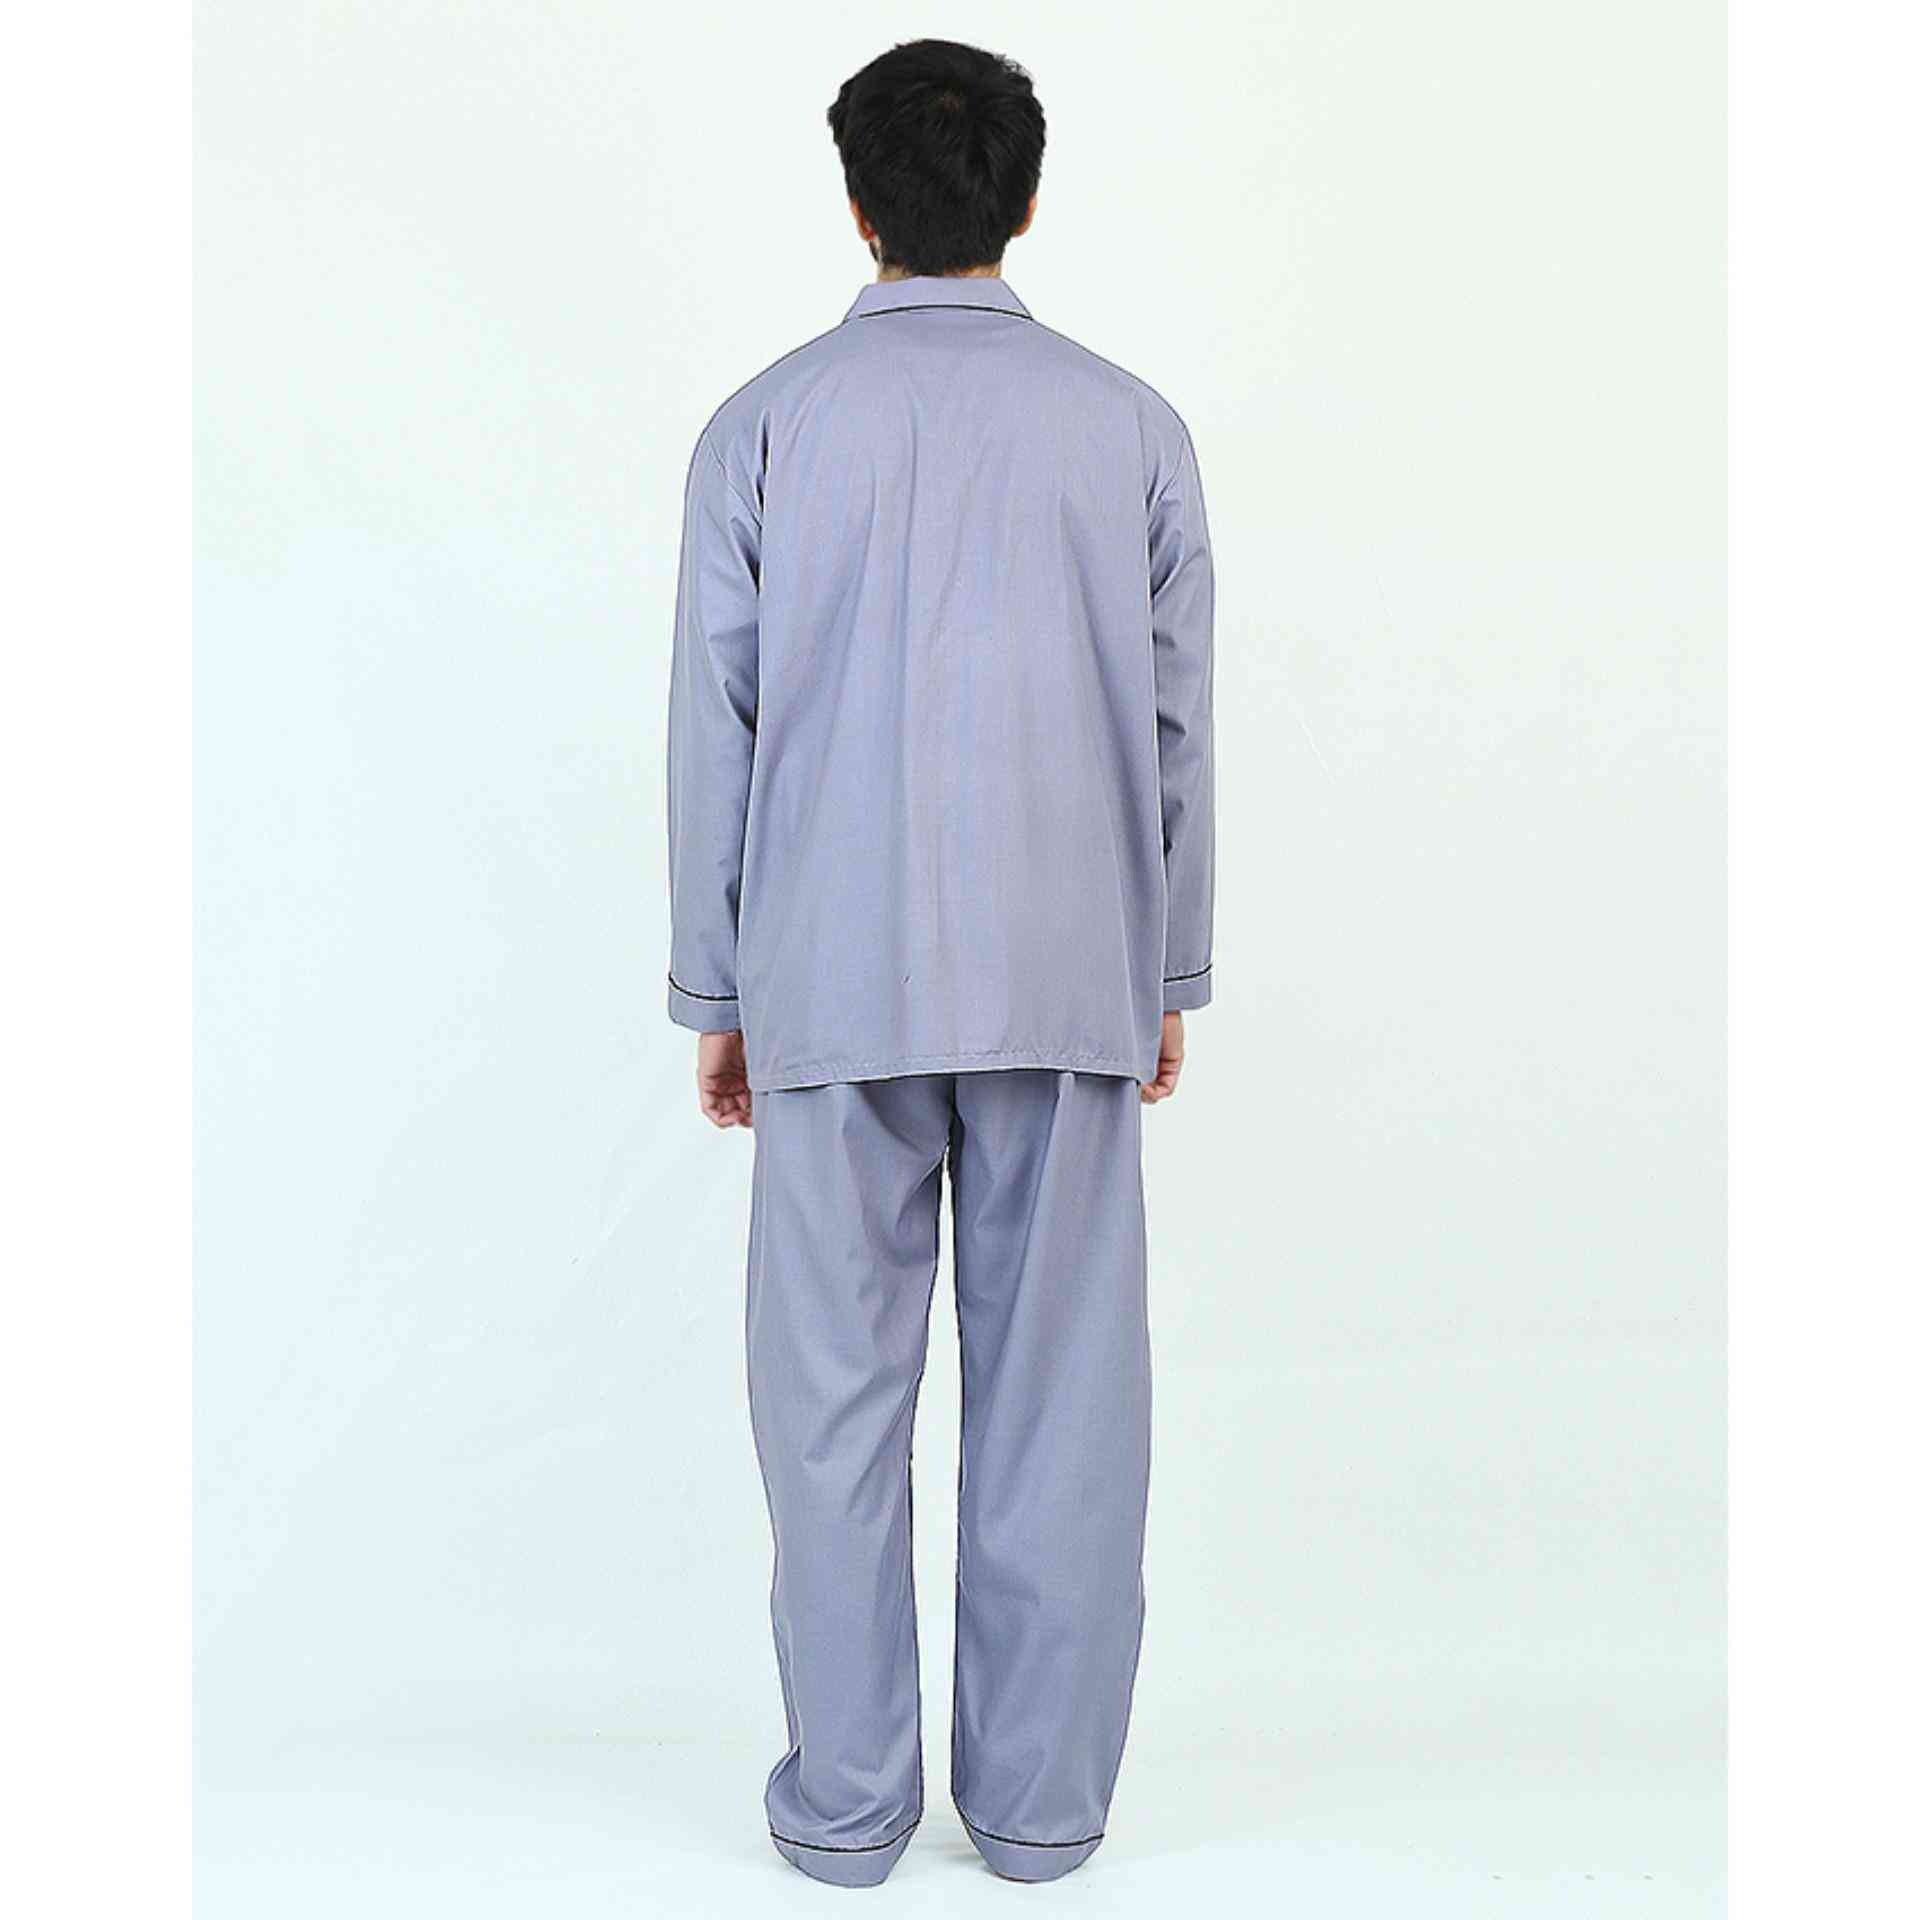 Pack of 2 Cotton Polyester Night Suit (Pajama + Shirt) for Men - Grey